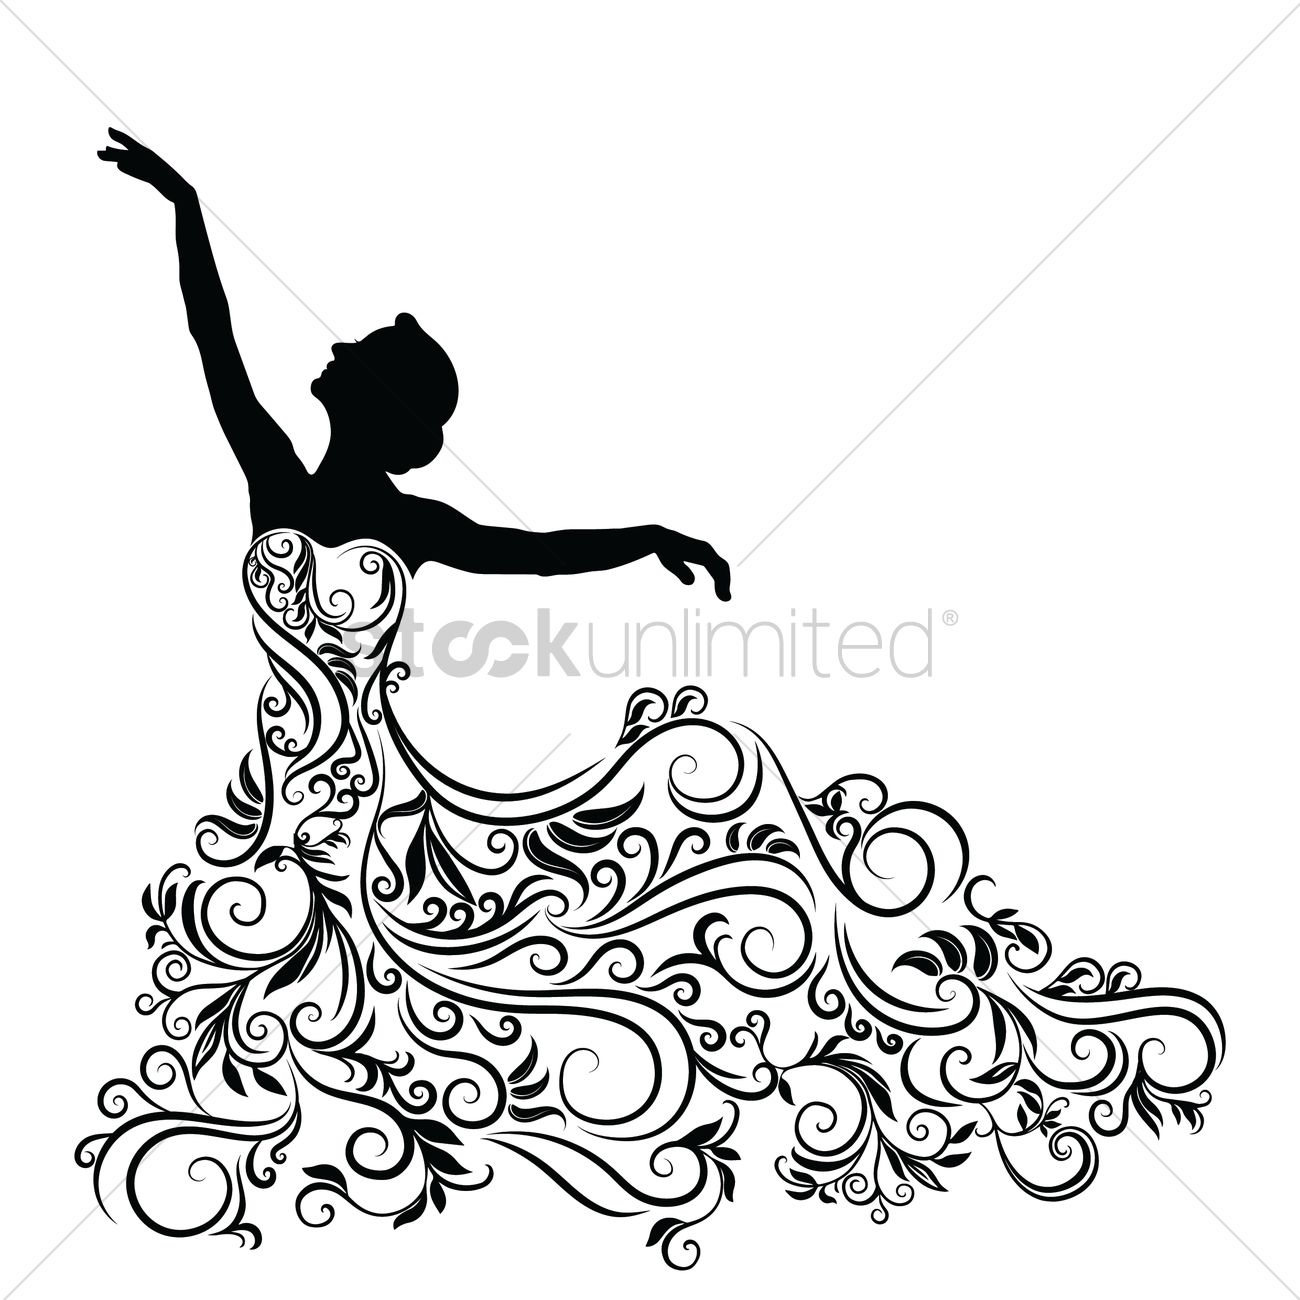 Silhouette of woman in an elegent dress Vector Image ...